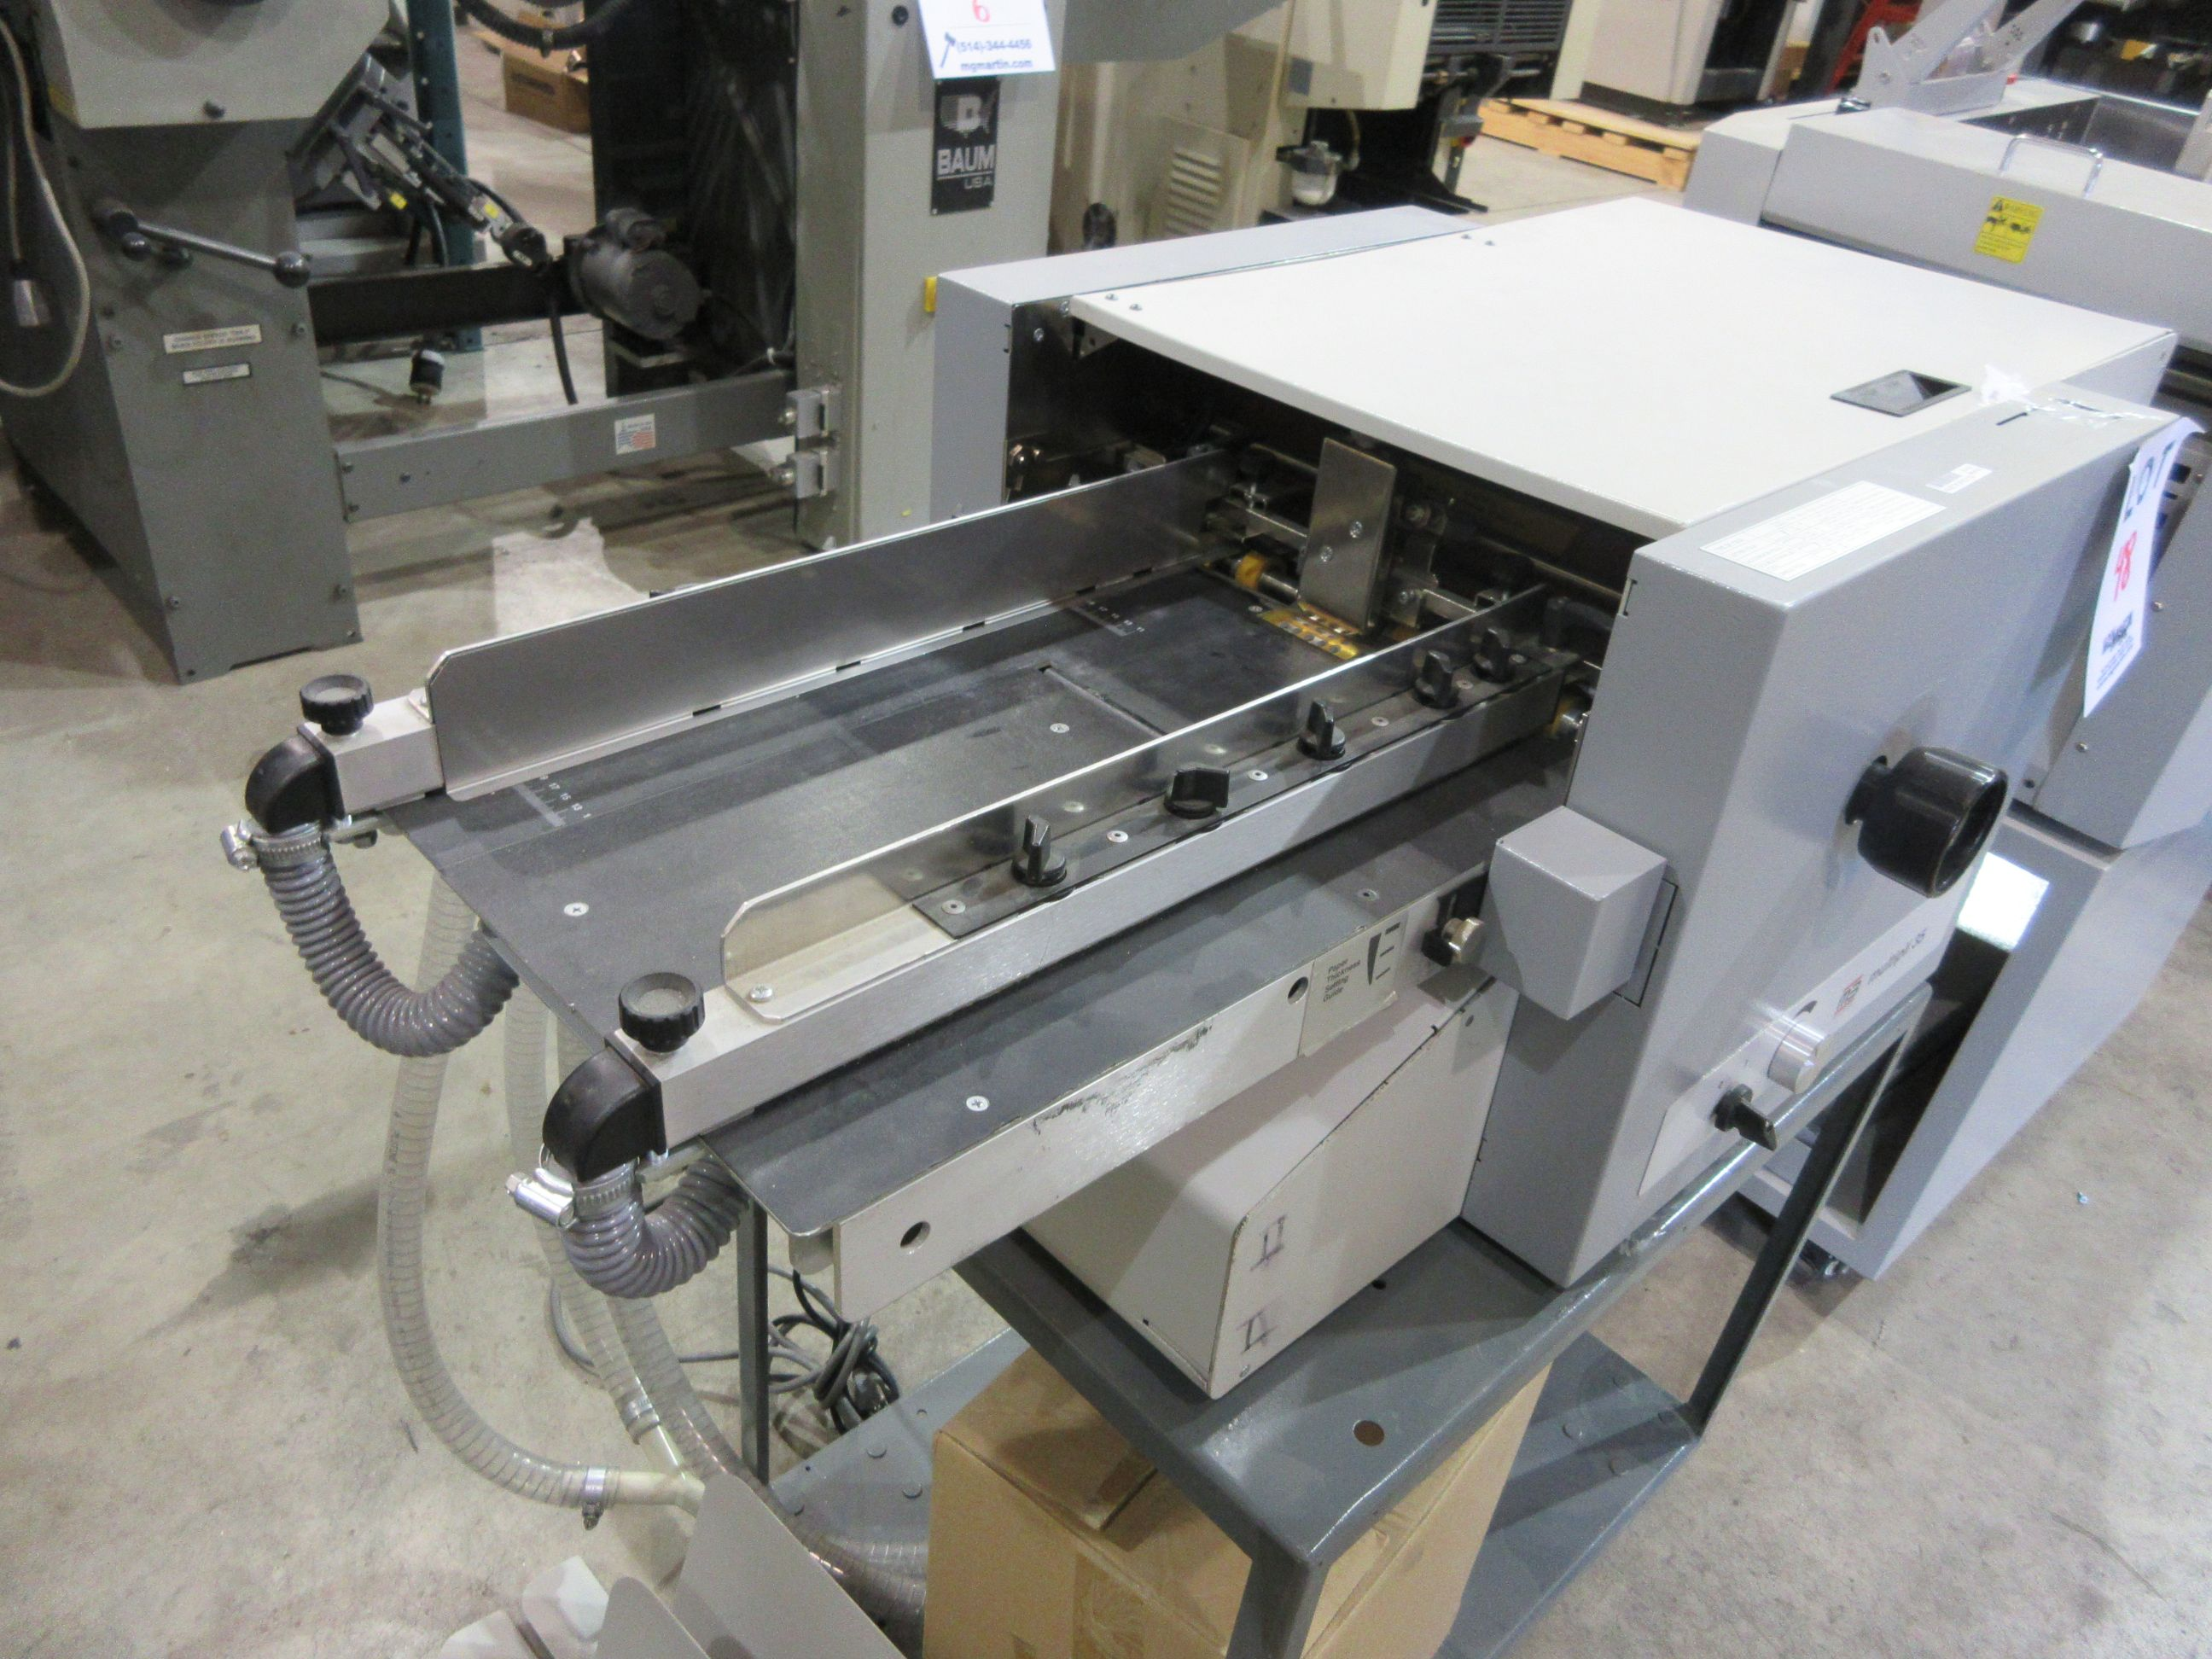 MB folding machine (mod: multipli 35) - Image 3 of 3